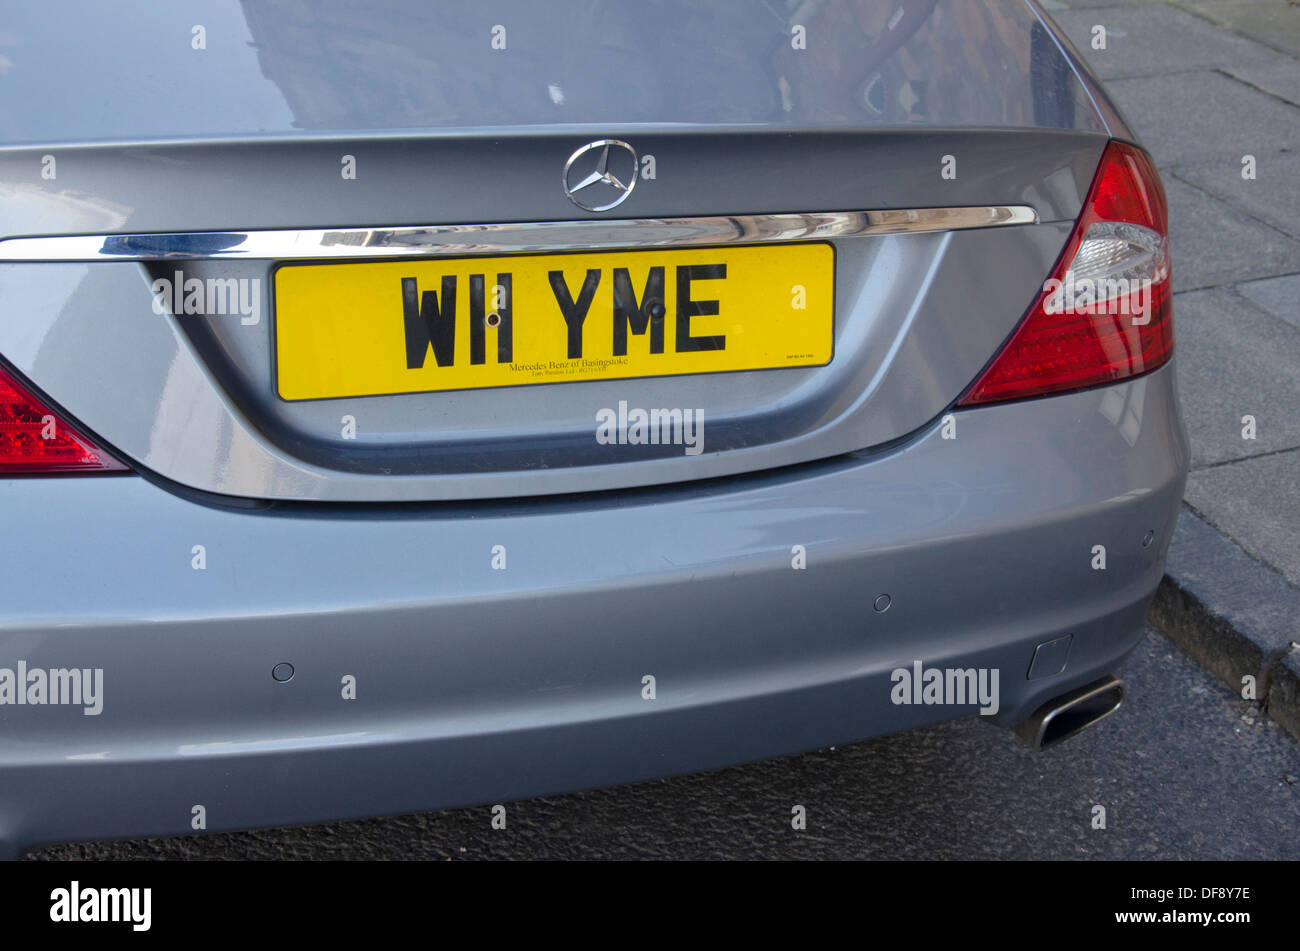 Personalised car license plate spelling out the question, 'Why me'. - Stock Image